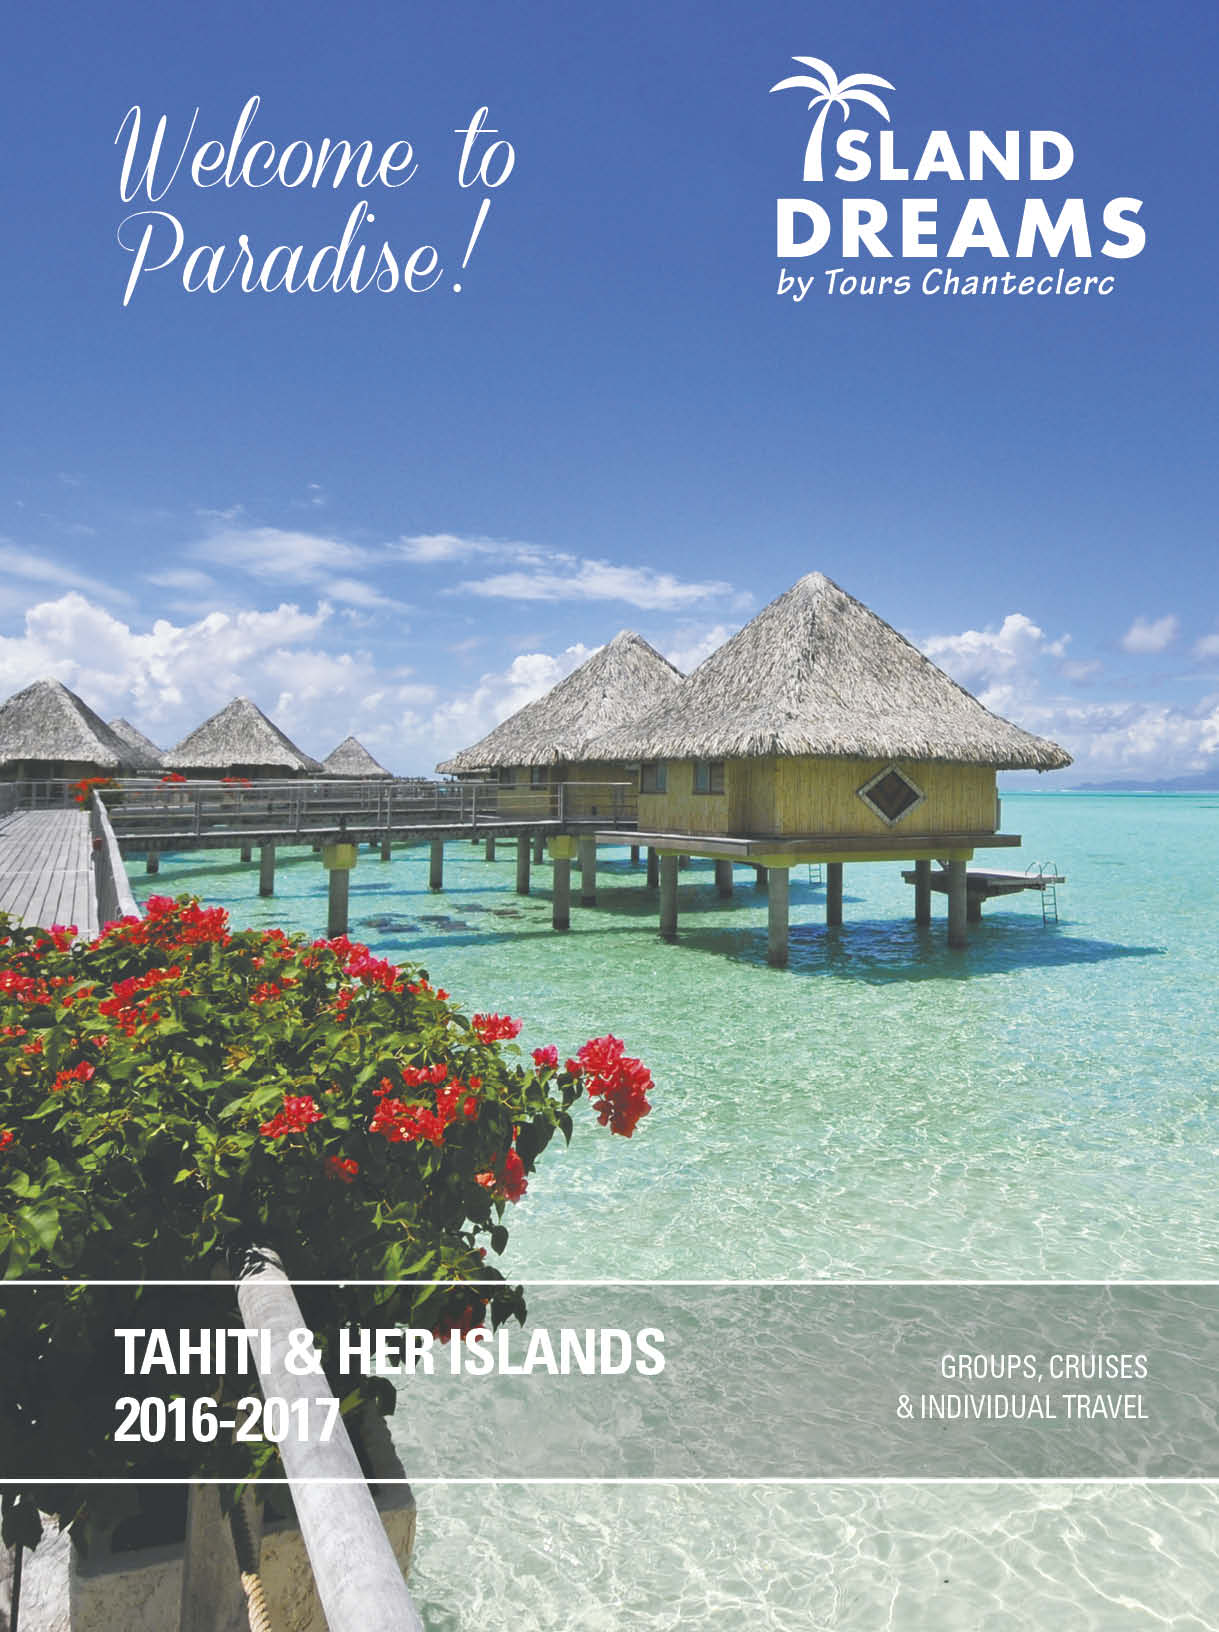 Tahiti & her Islands